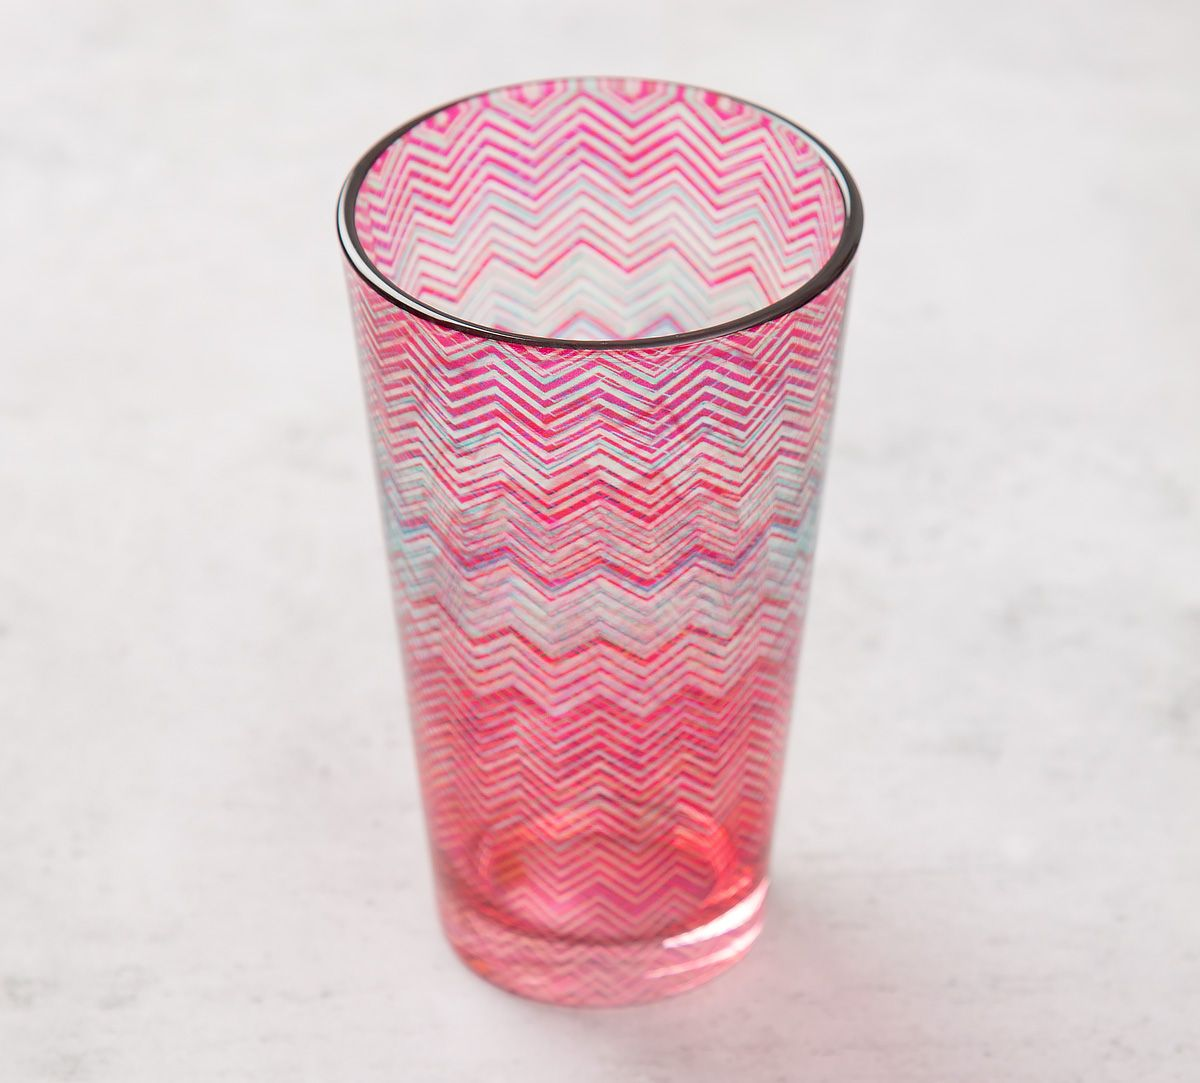 9e34c6066d59 India Circus Waves of Chevron Glass Tumbler. Tap to expand